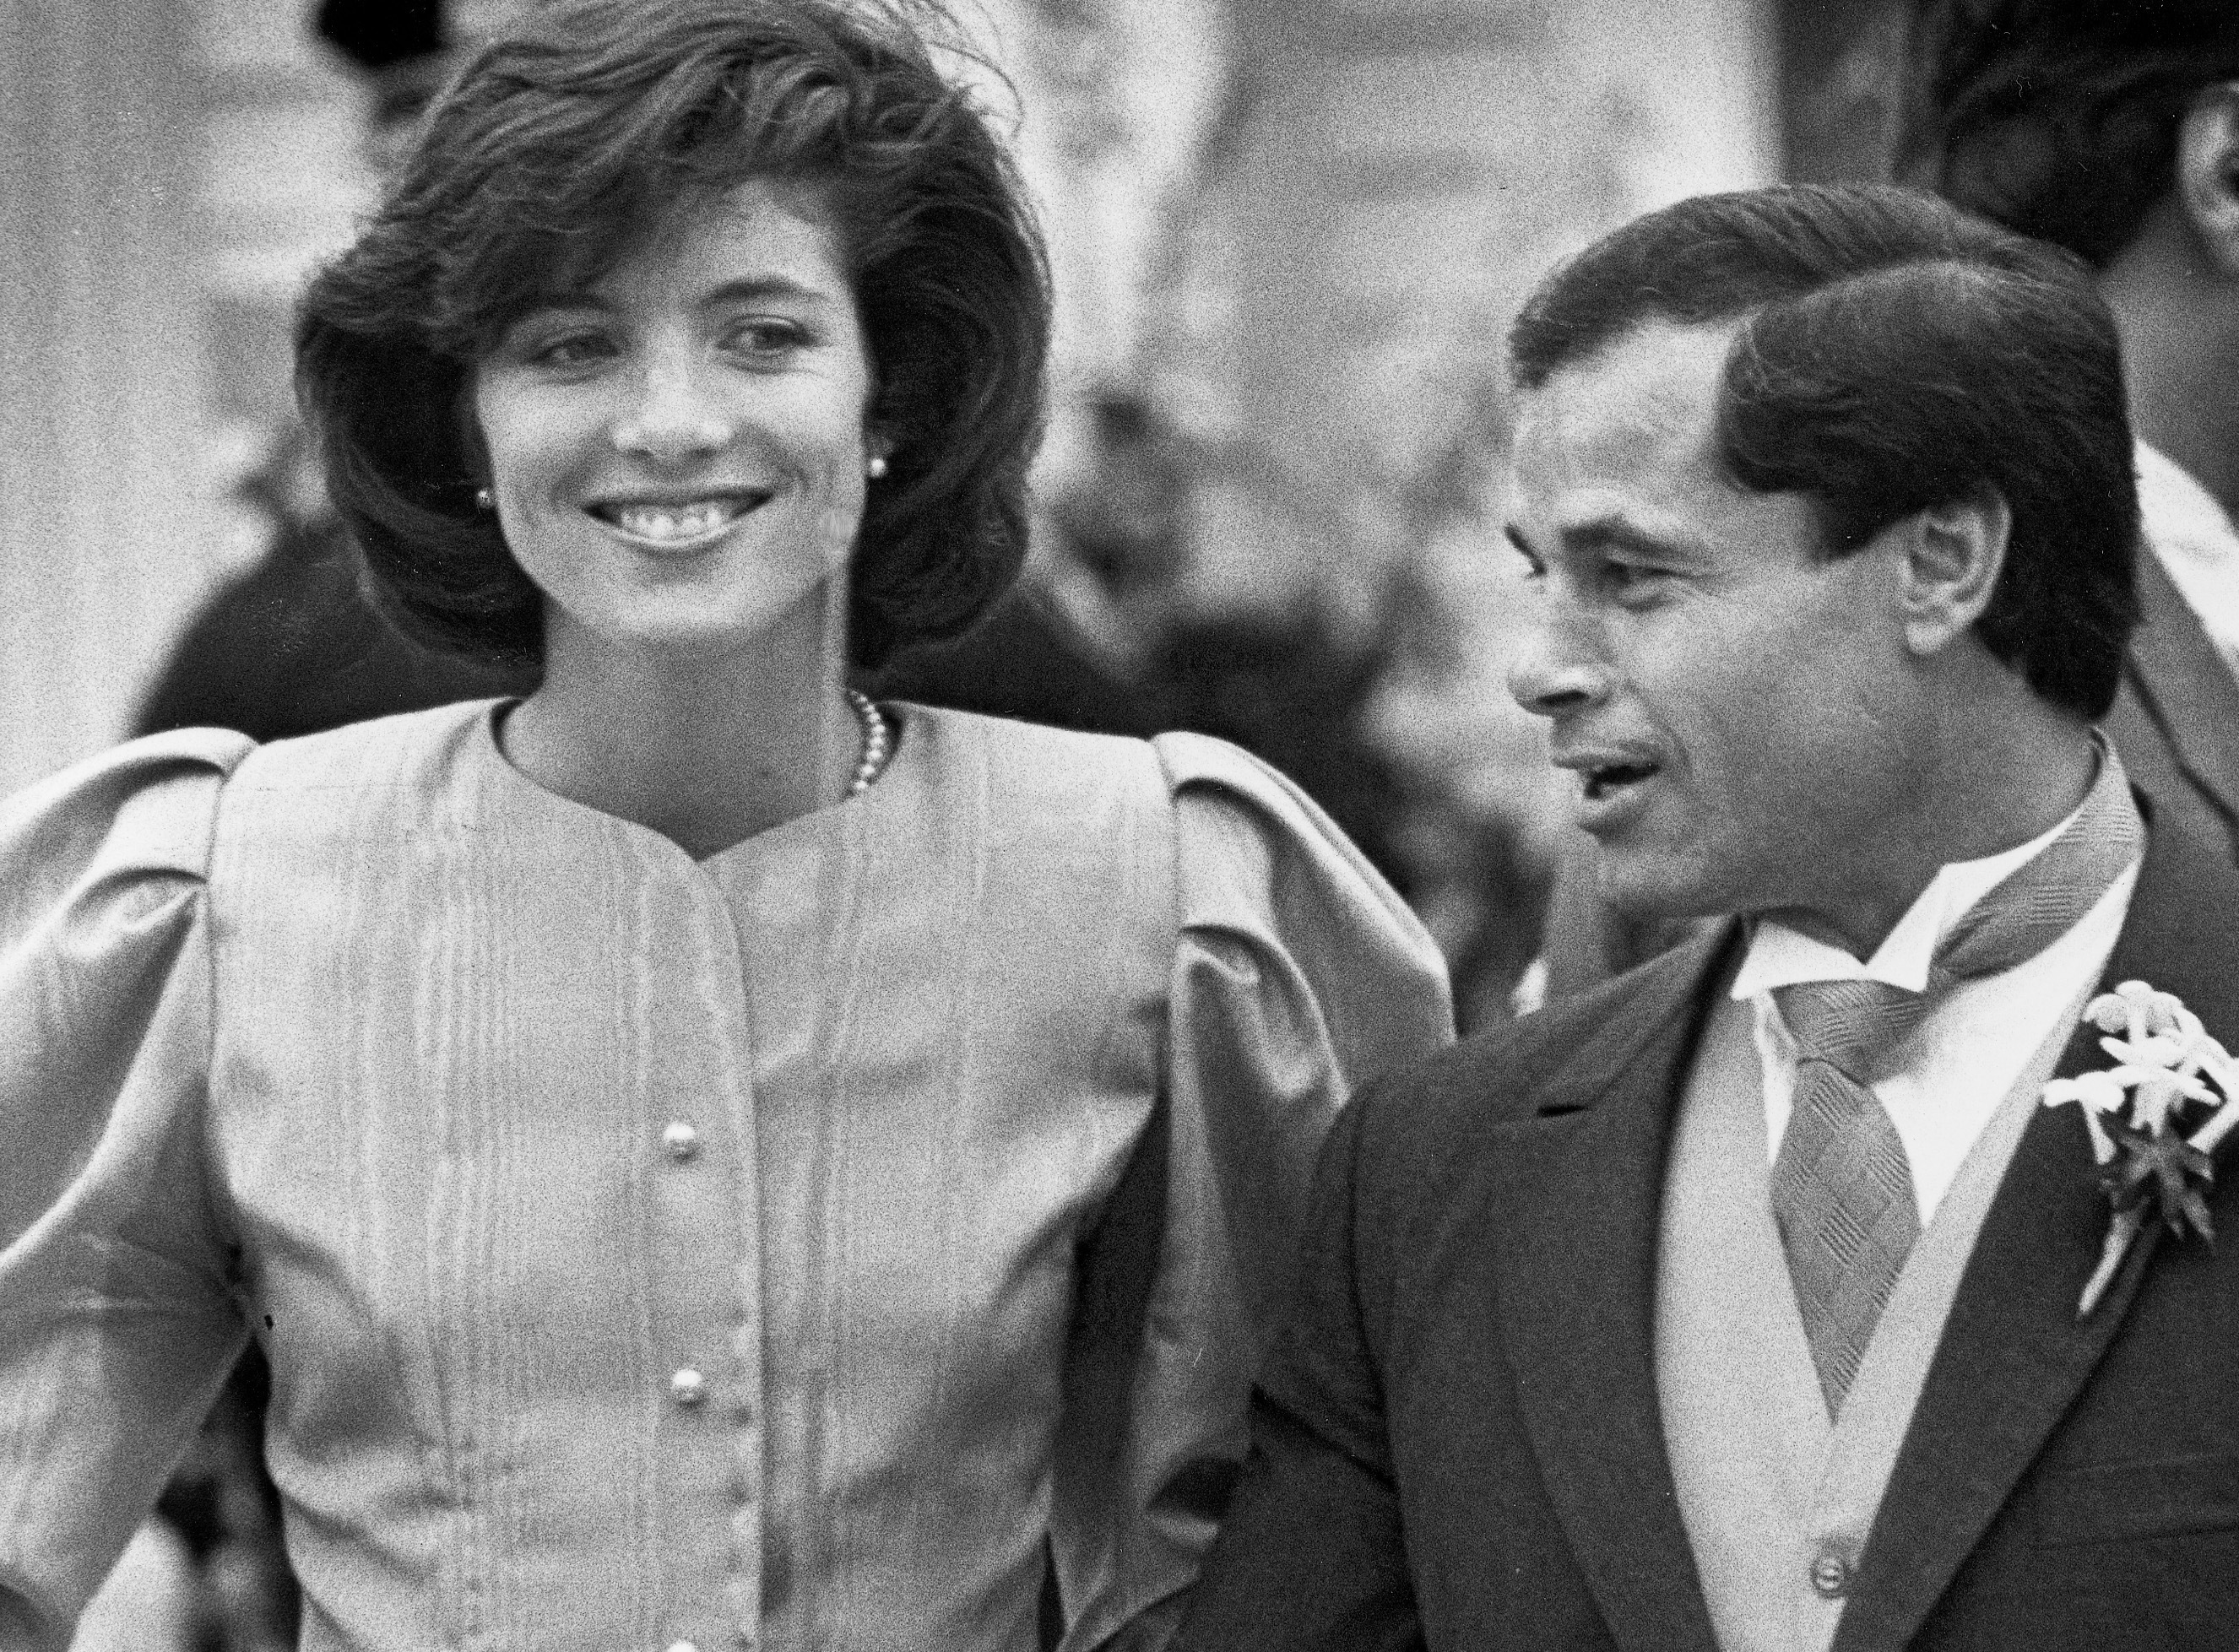 Maid of honor Caroline Kennedy and Best Man Franco Columbu, leave St. Francis Xavier Church after the wedding of Caroline's cousin Maria Shriver to Arnold Schwarzenegger in Hyannis, Massachusetts in 1986.